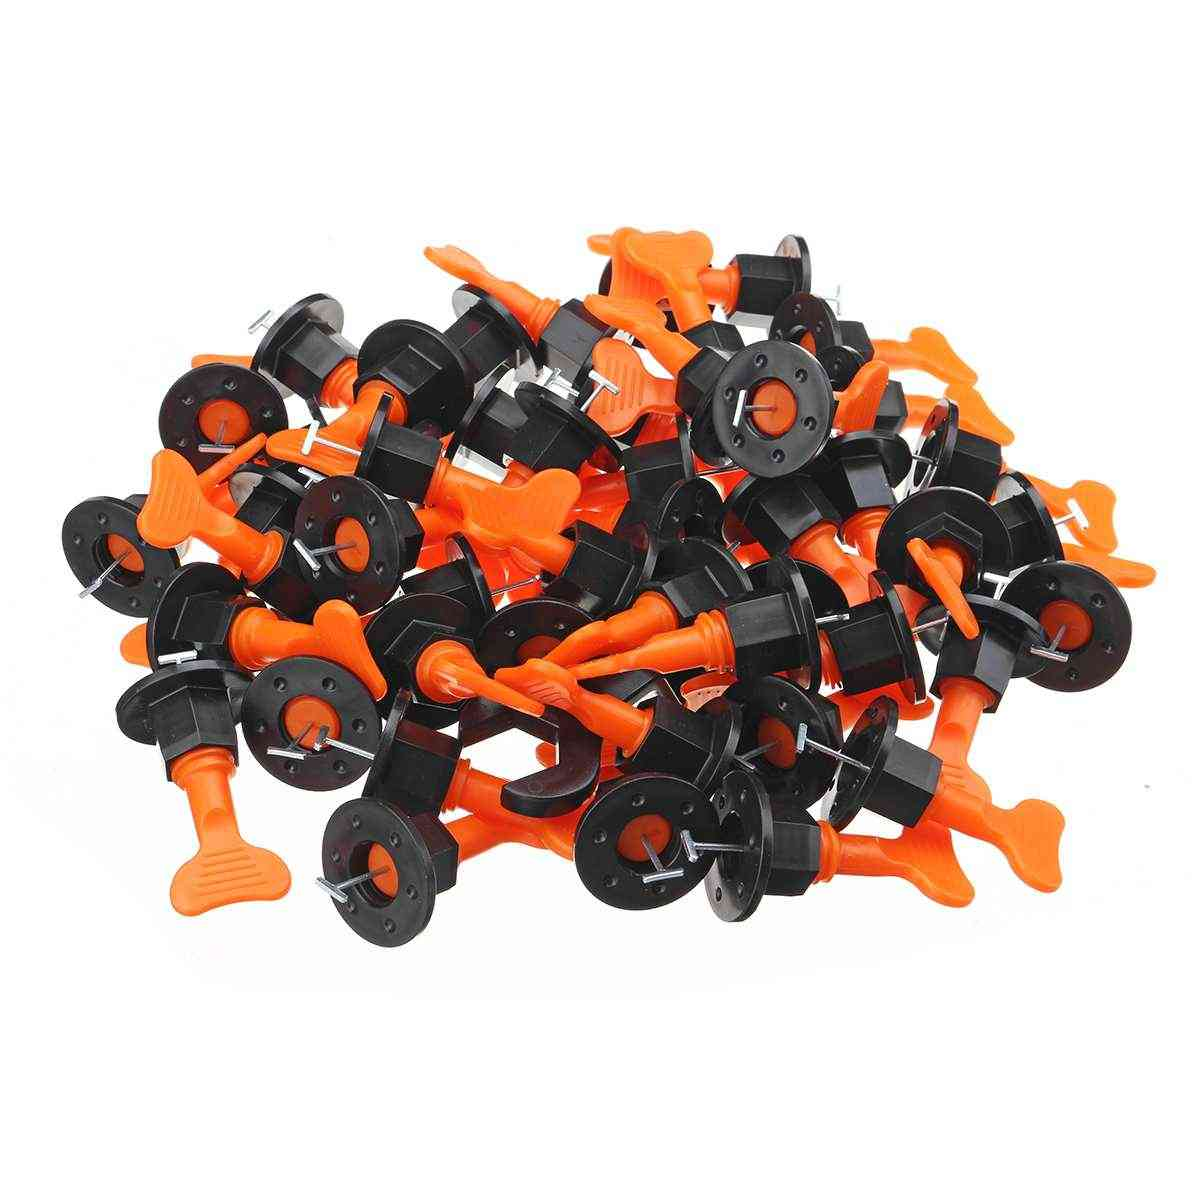 100pcs- Tile Wedges Alignment, Spacers Locator, Leveling System Tool